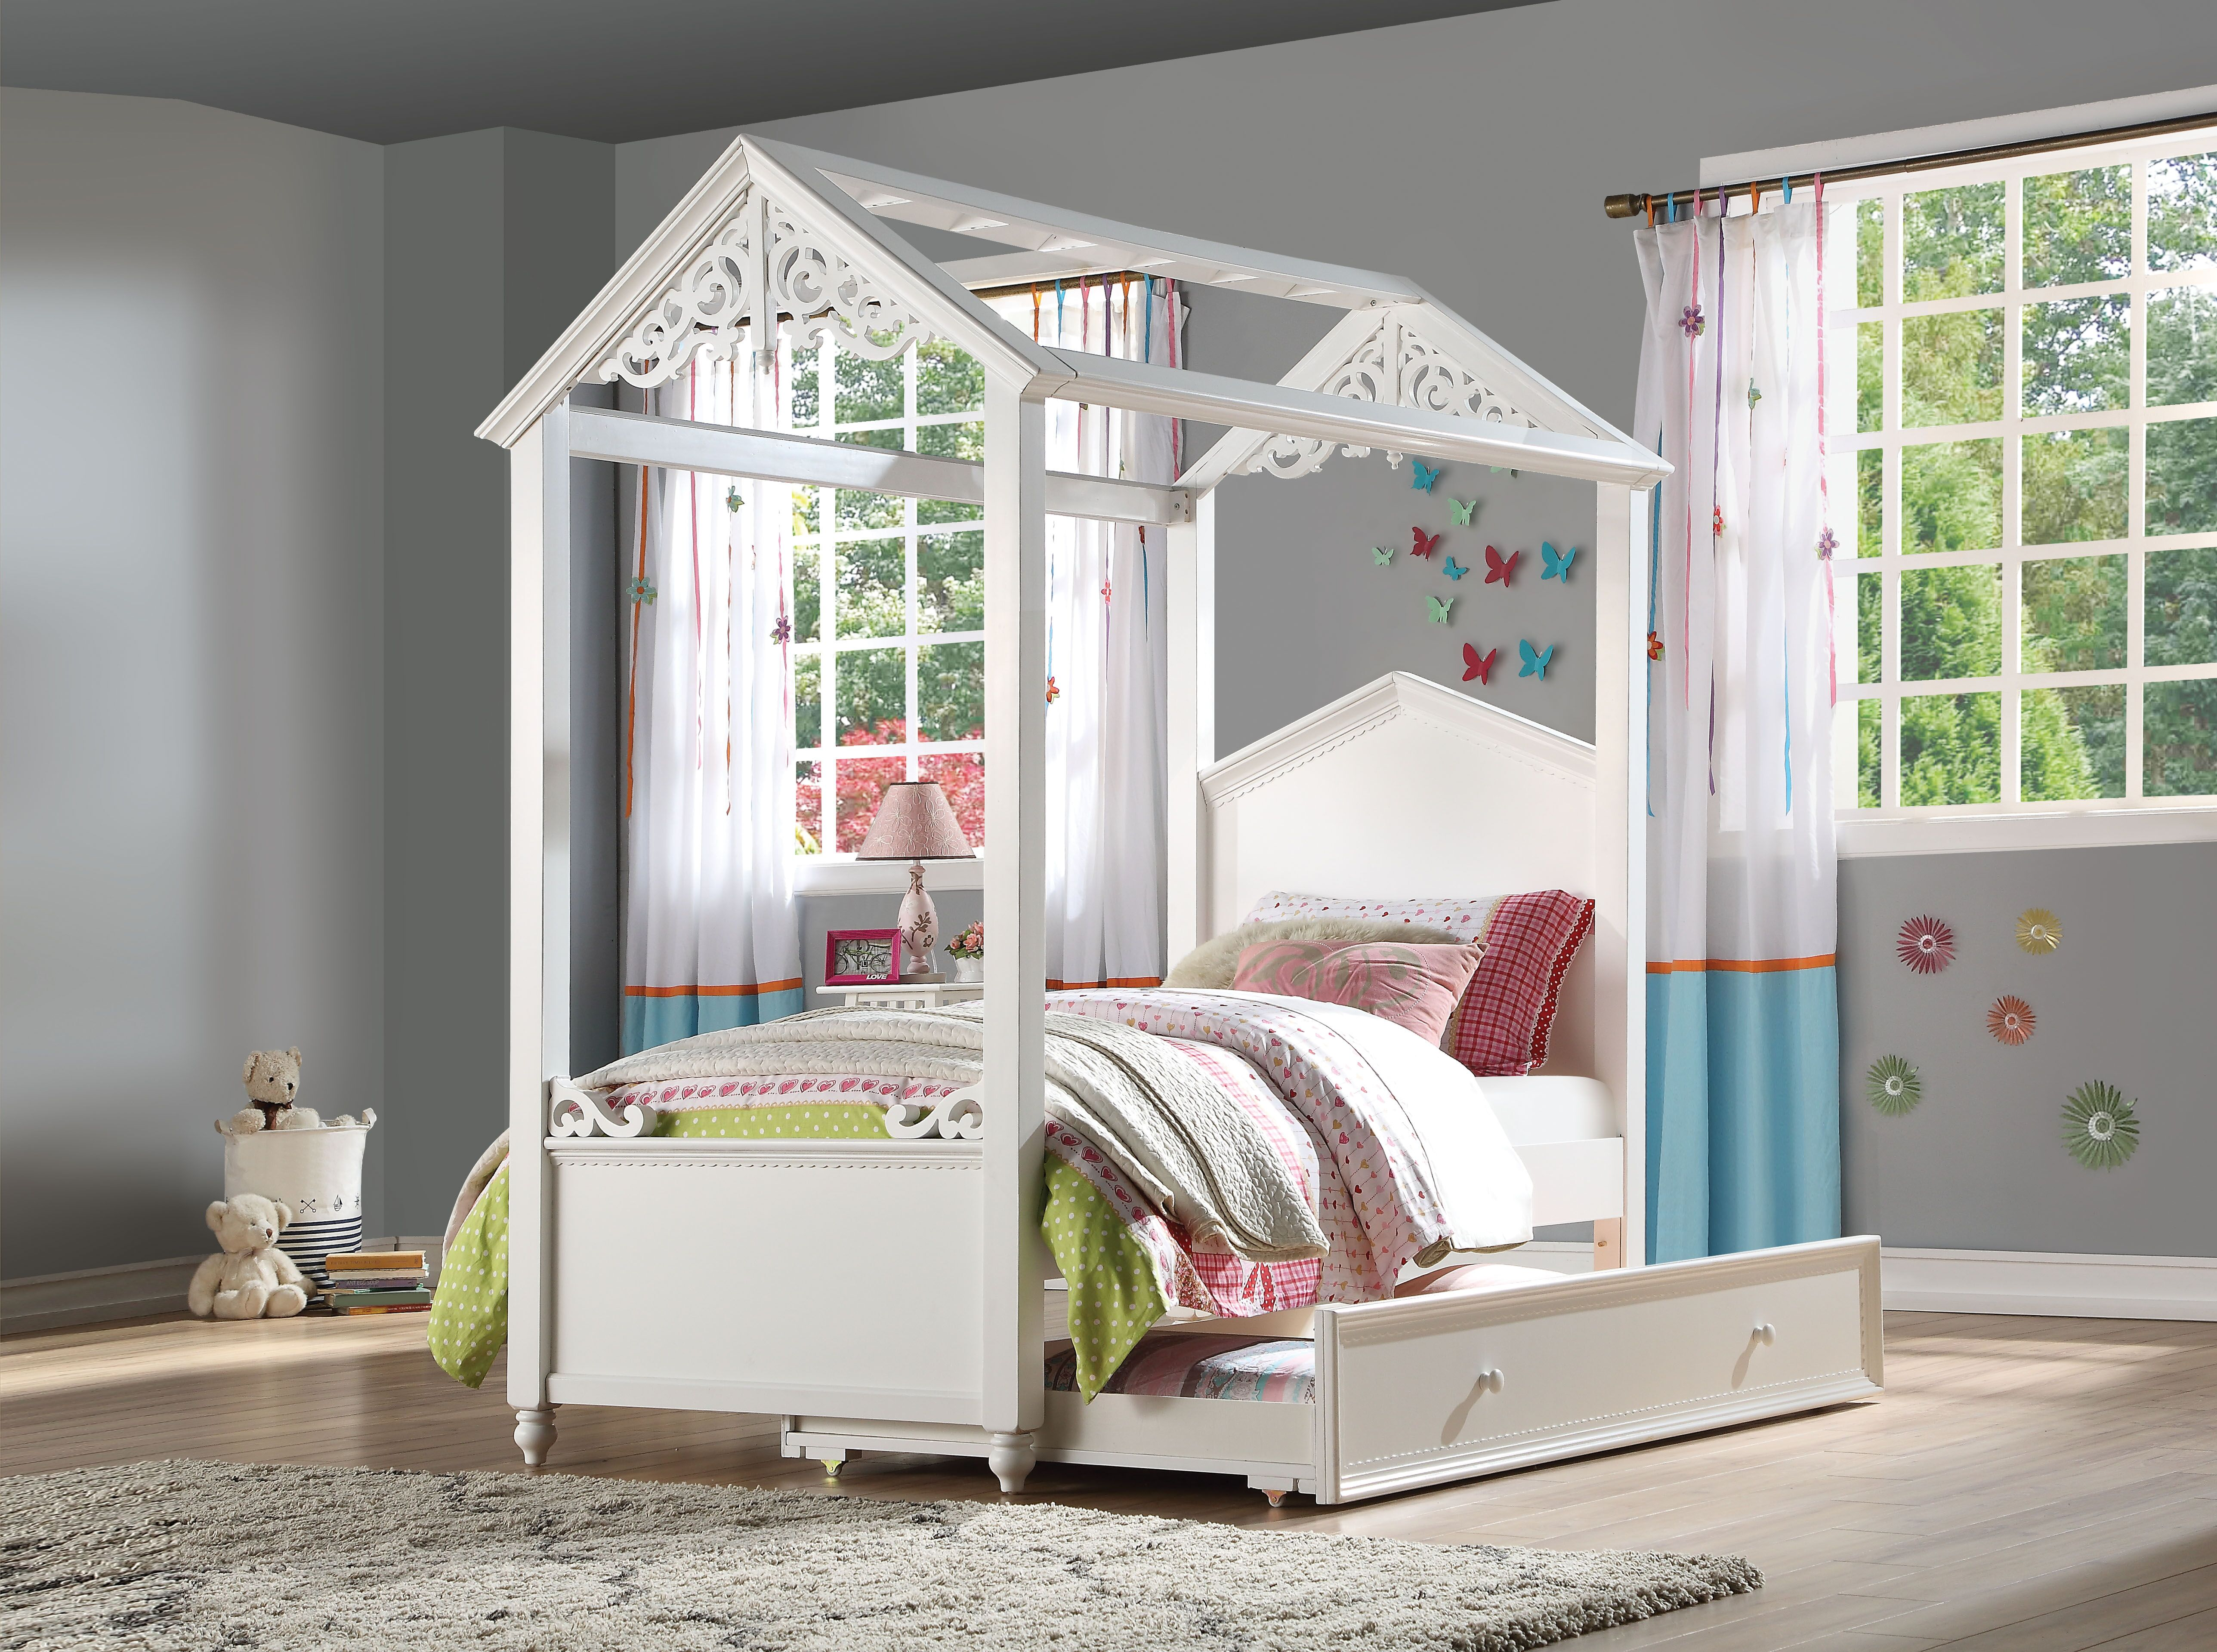 Rapunzel White Finish Twin Bed With Trundle Collection Las Vegas Furniture Store Modern Home Furniture Cornerstone Furniture